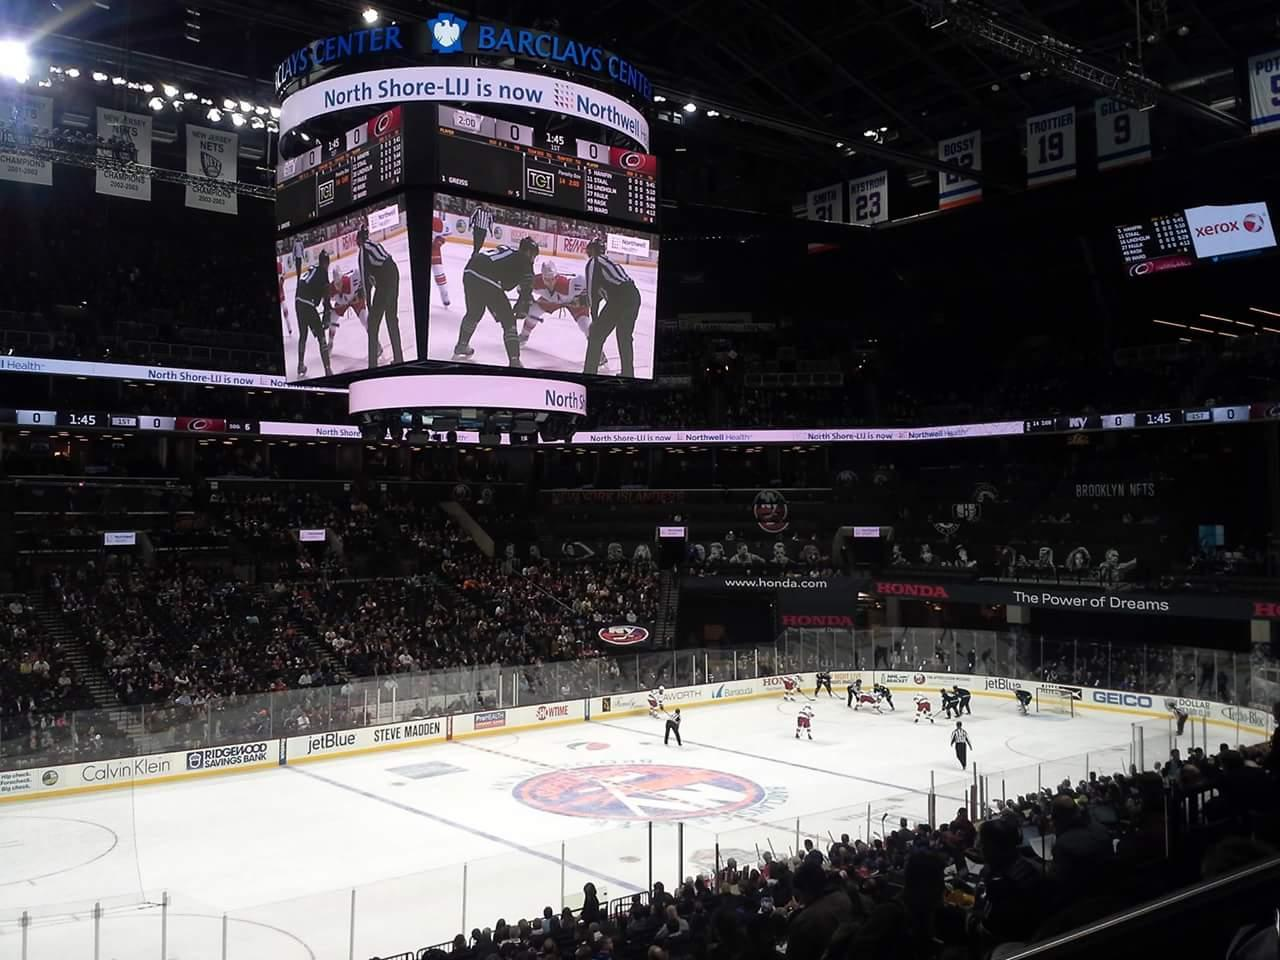 Barclays Center Section 111 Row 6 Seat 1